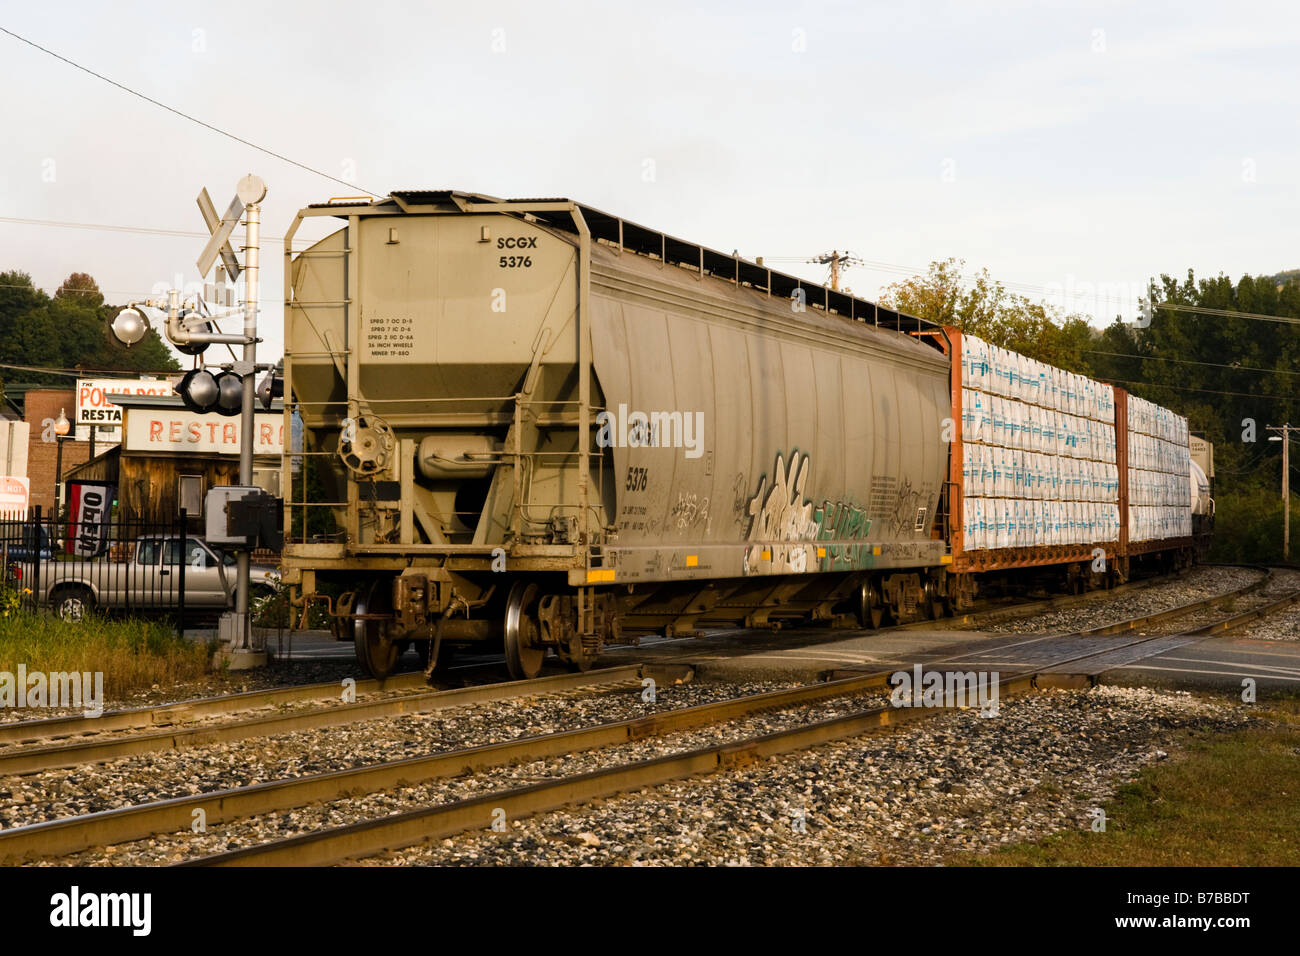 Switching Railroad Freight Cars Stock Photos Switching Railroad